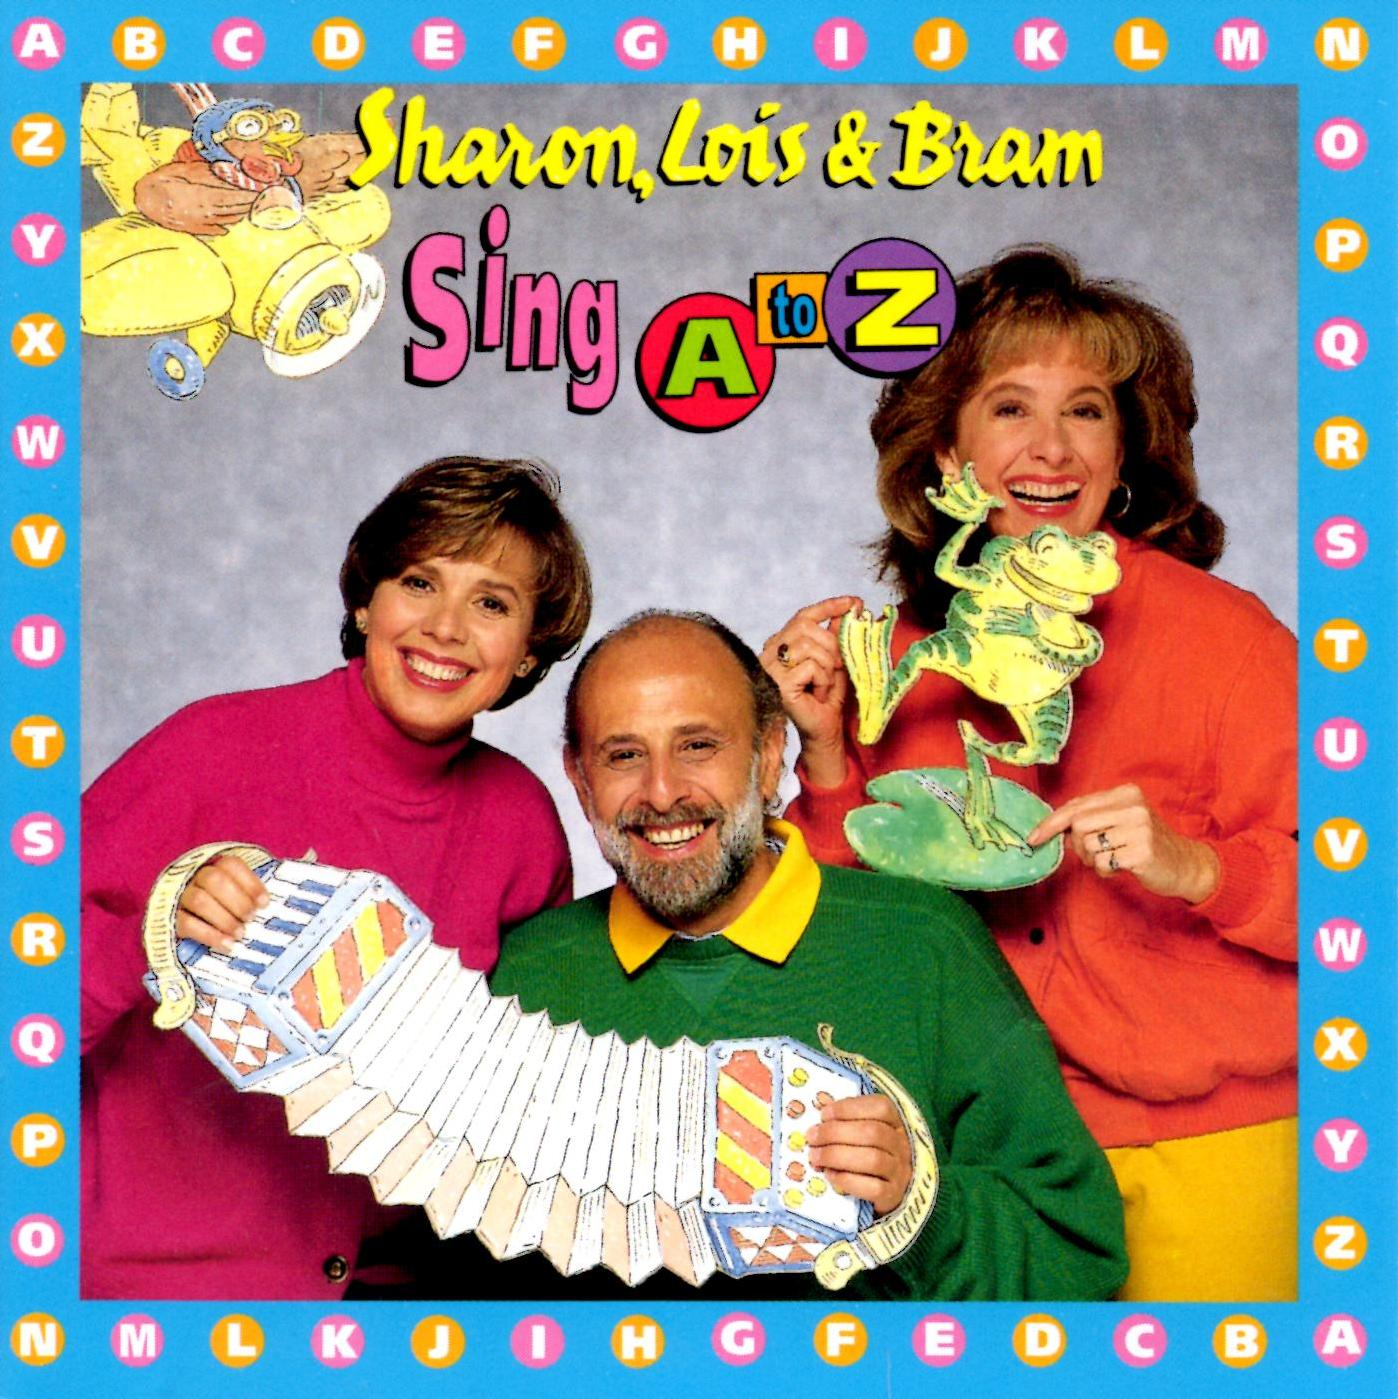 Sing A to Z (Can).jpg